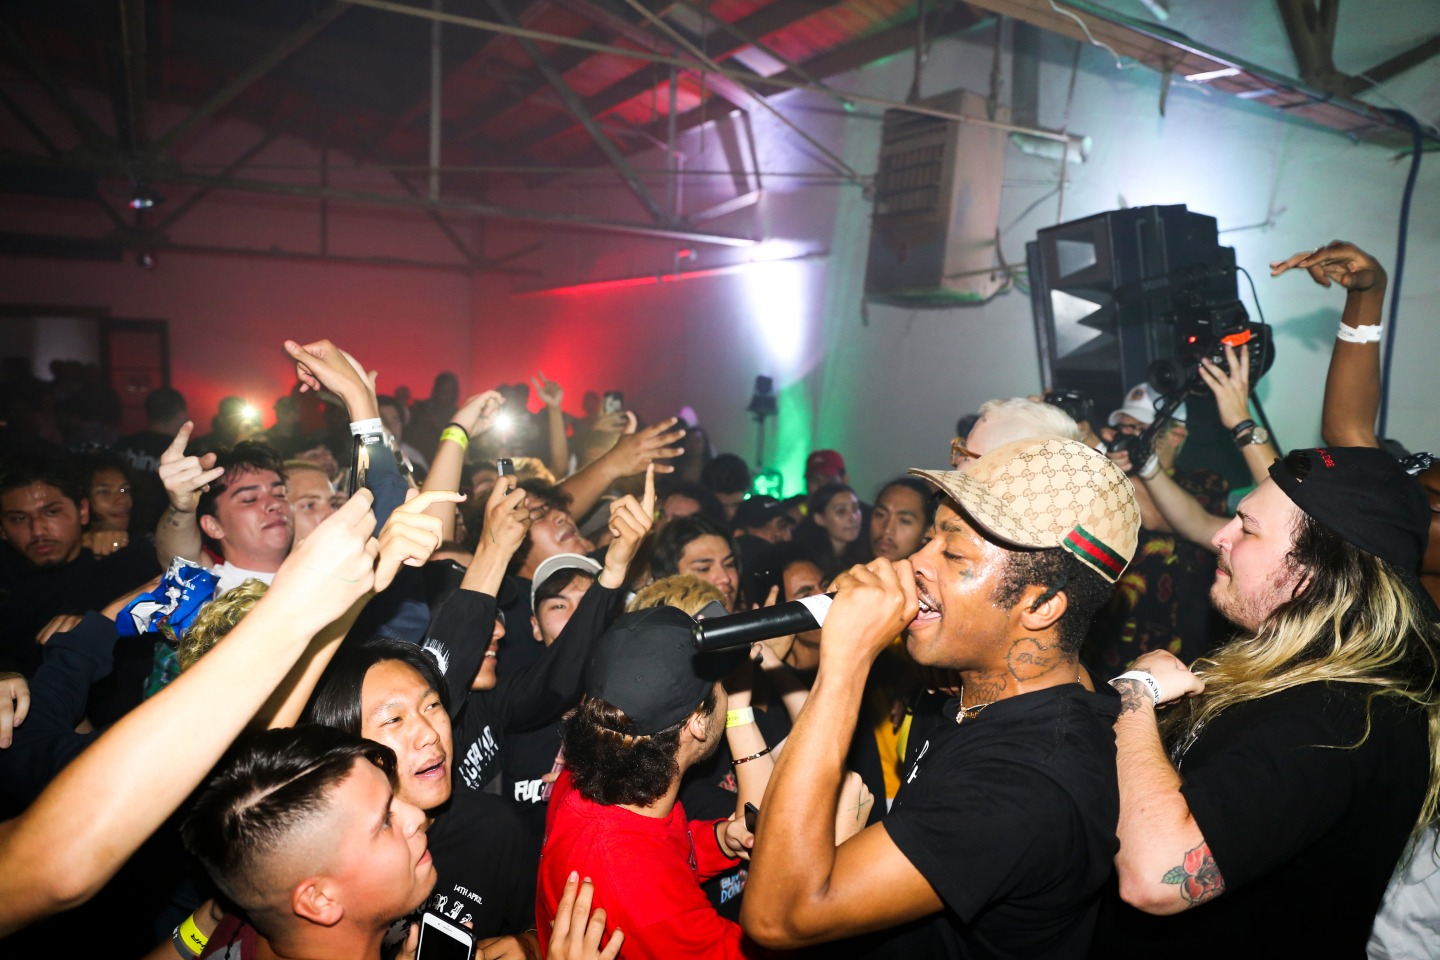 New Wave Auto >> All The Pictures You Need To See From Fat Nick And Lil Tracy's Intimate L.A. Show | The FADER